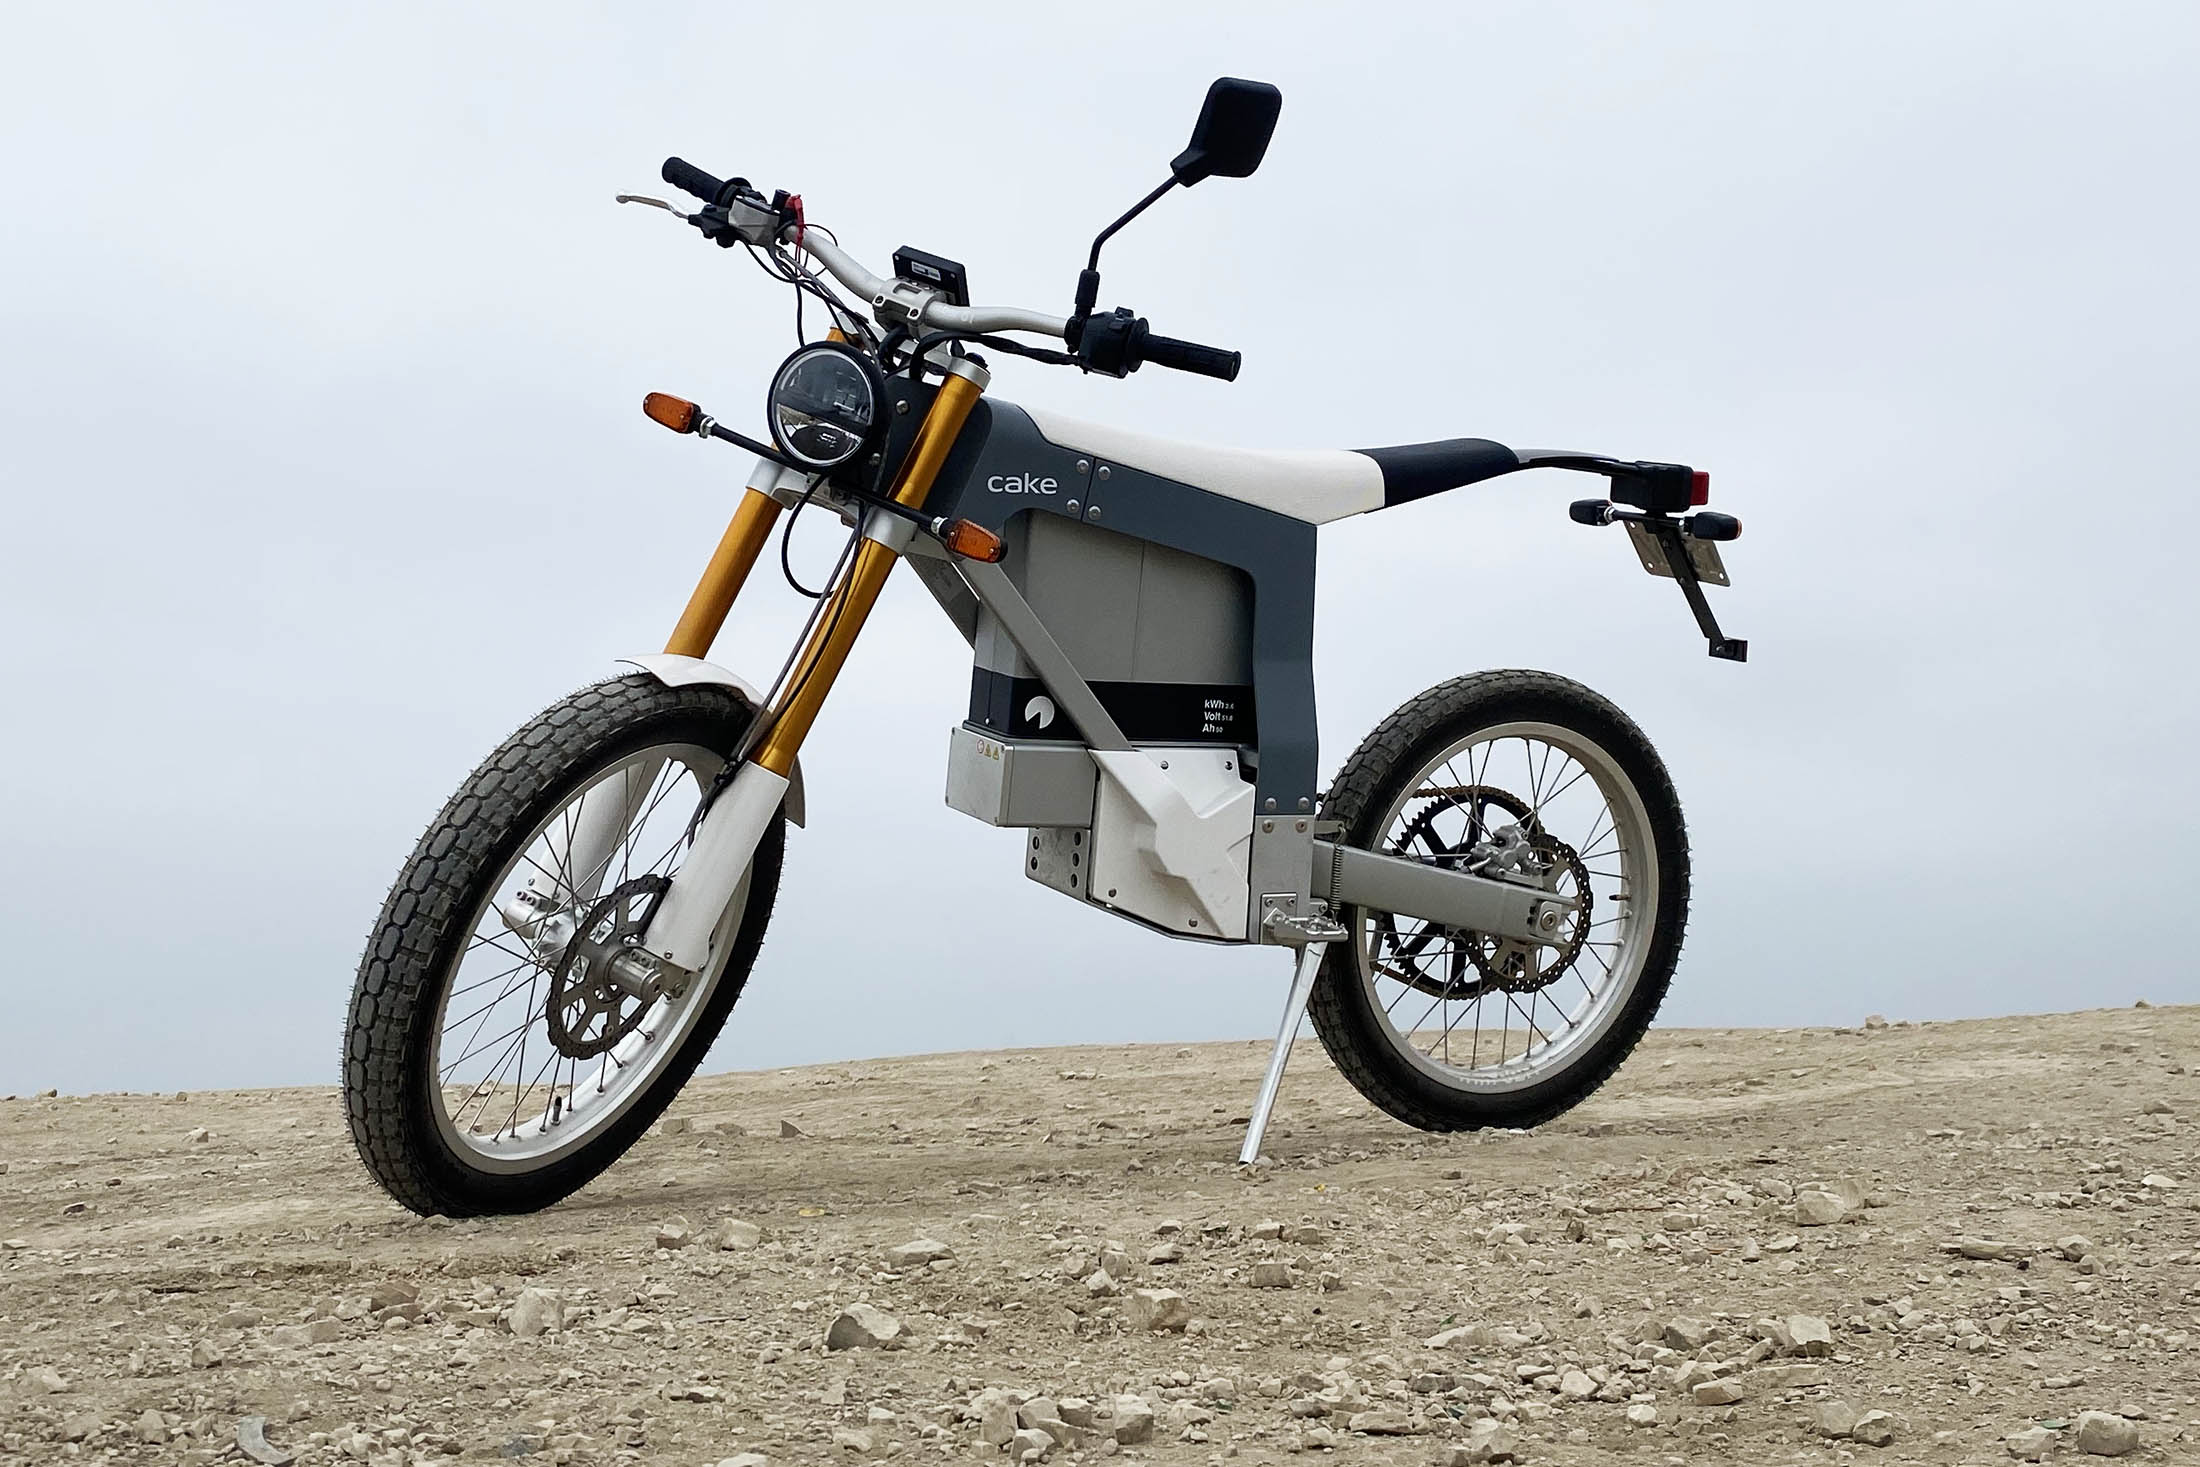 relates to Back to the Bike Lane: The Cake Electric Motorcycle Just Isn't It